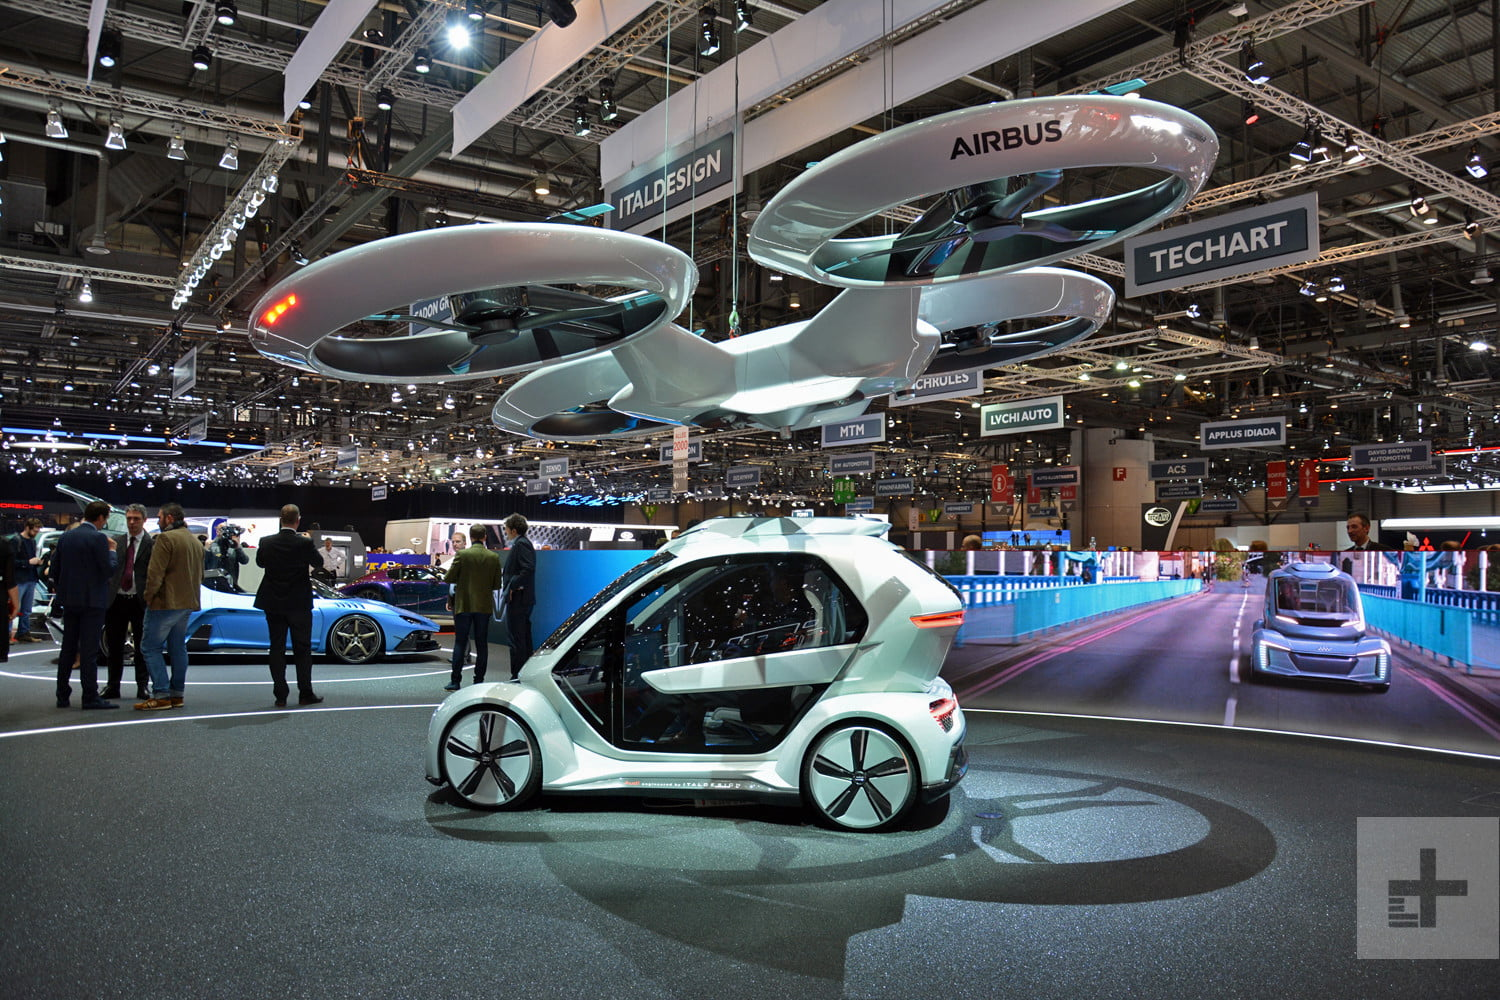 Audi Airbus And Italdesign Want You To Commute In A Flying Car Digital Trends